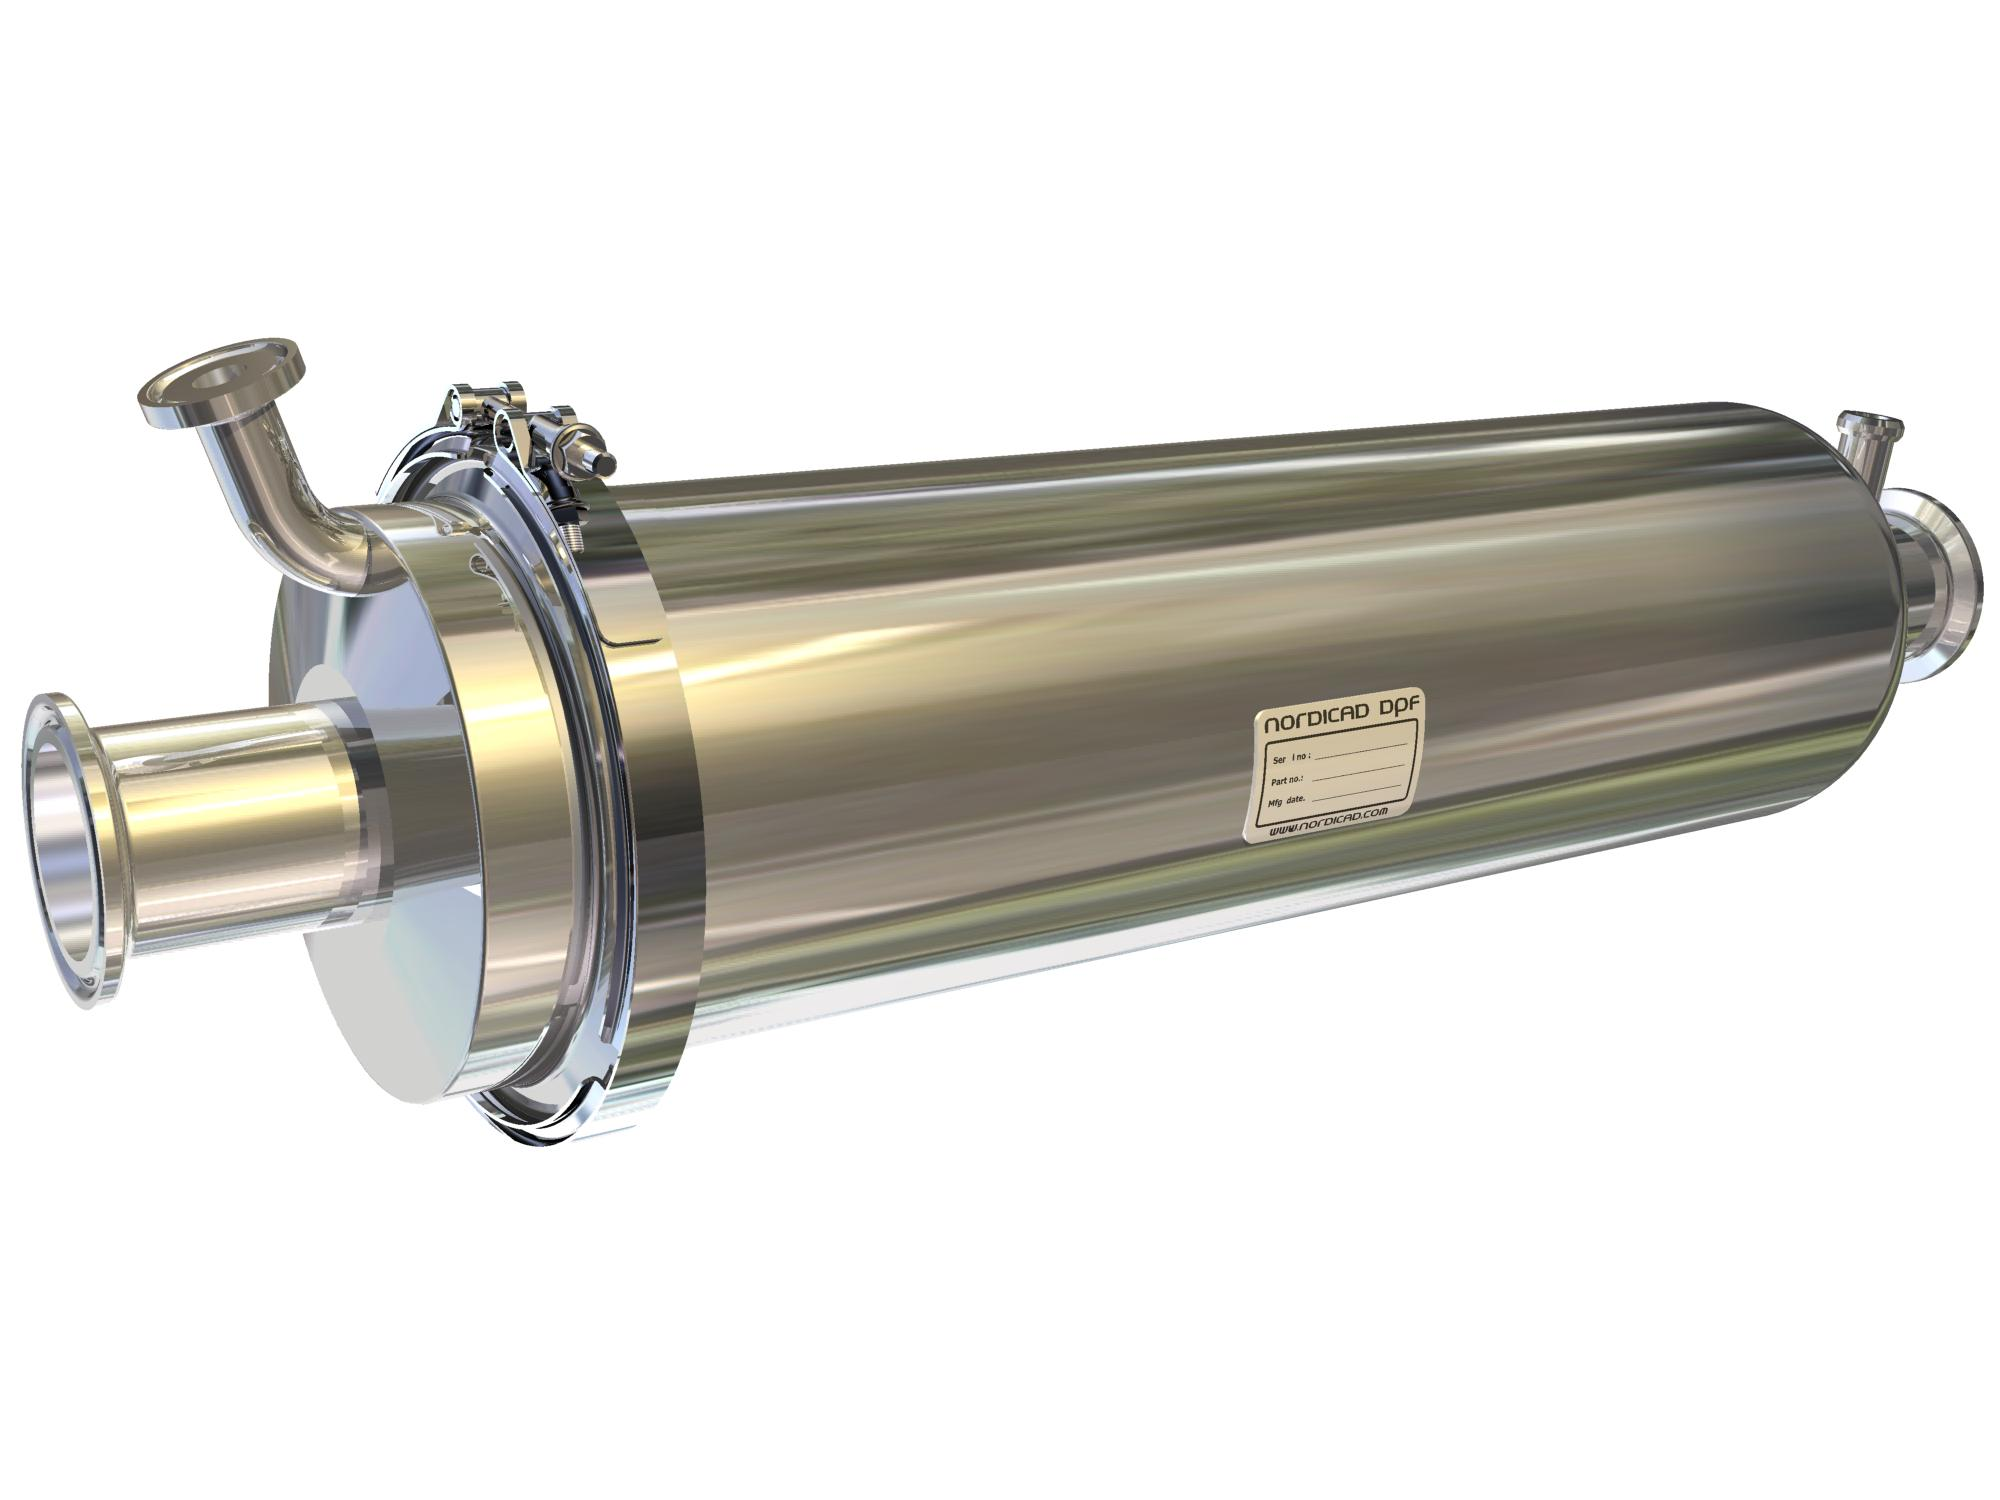 New Stralis Truck additionally Particulate Filter in addition 854169 together with Filtrul De Particule Regenerare Probleme Dpf Fap 39944 moreover Index. on exhaust regeneration system